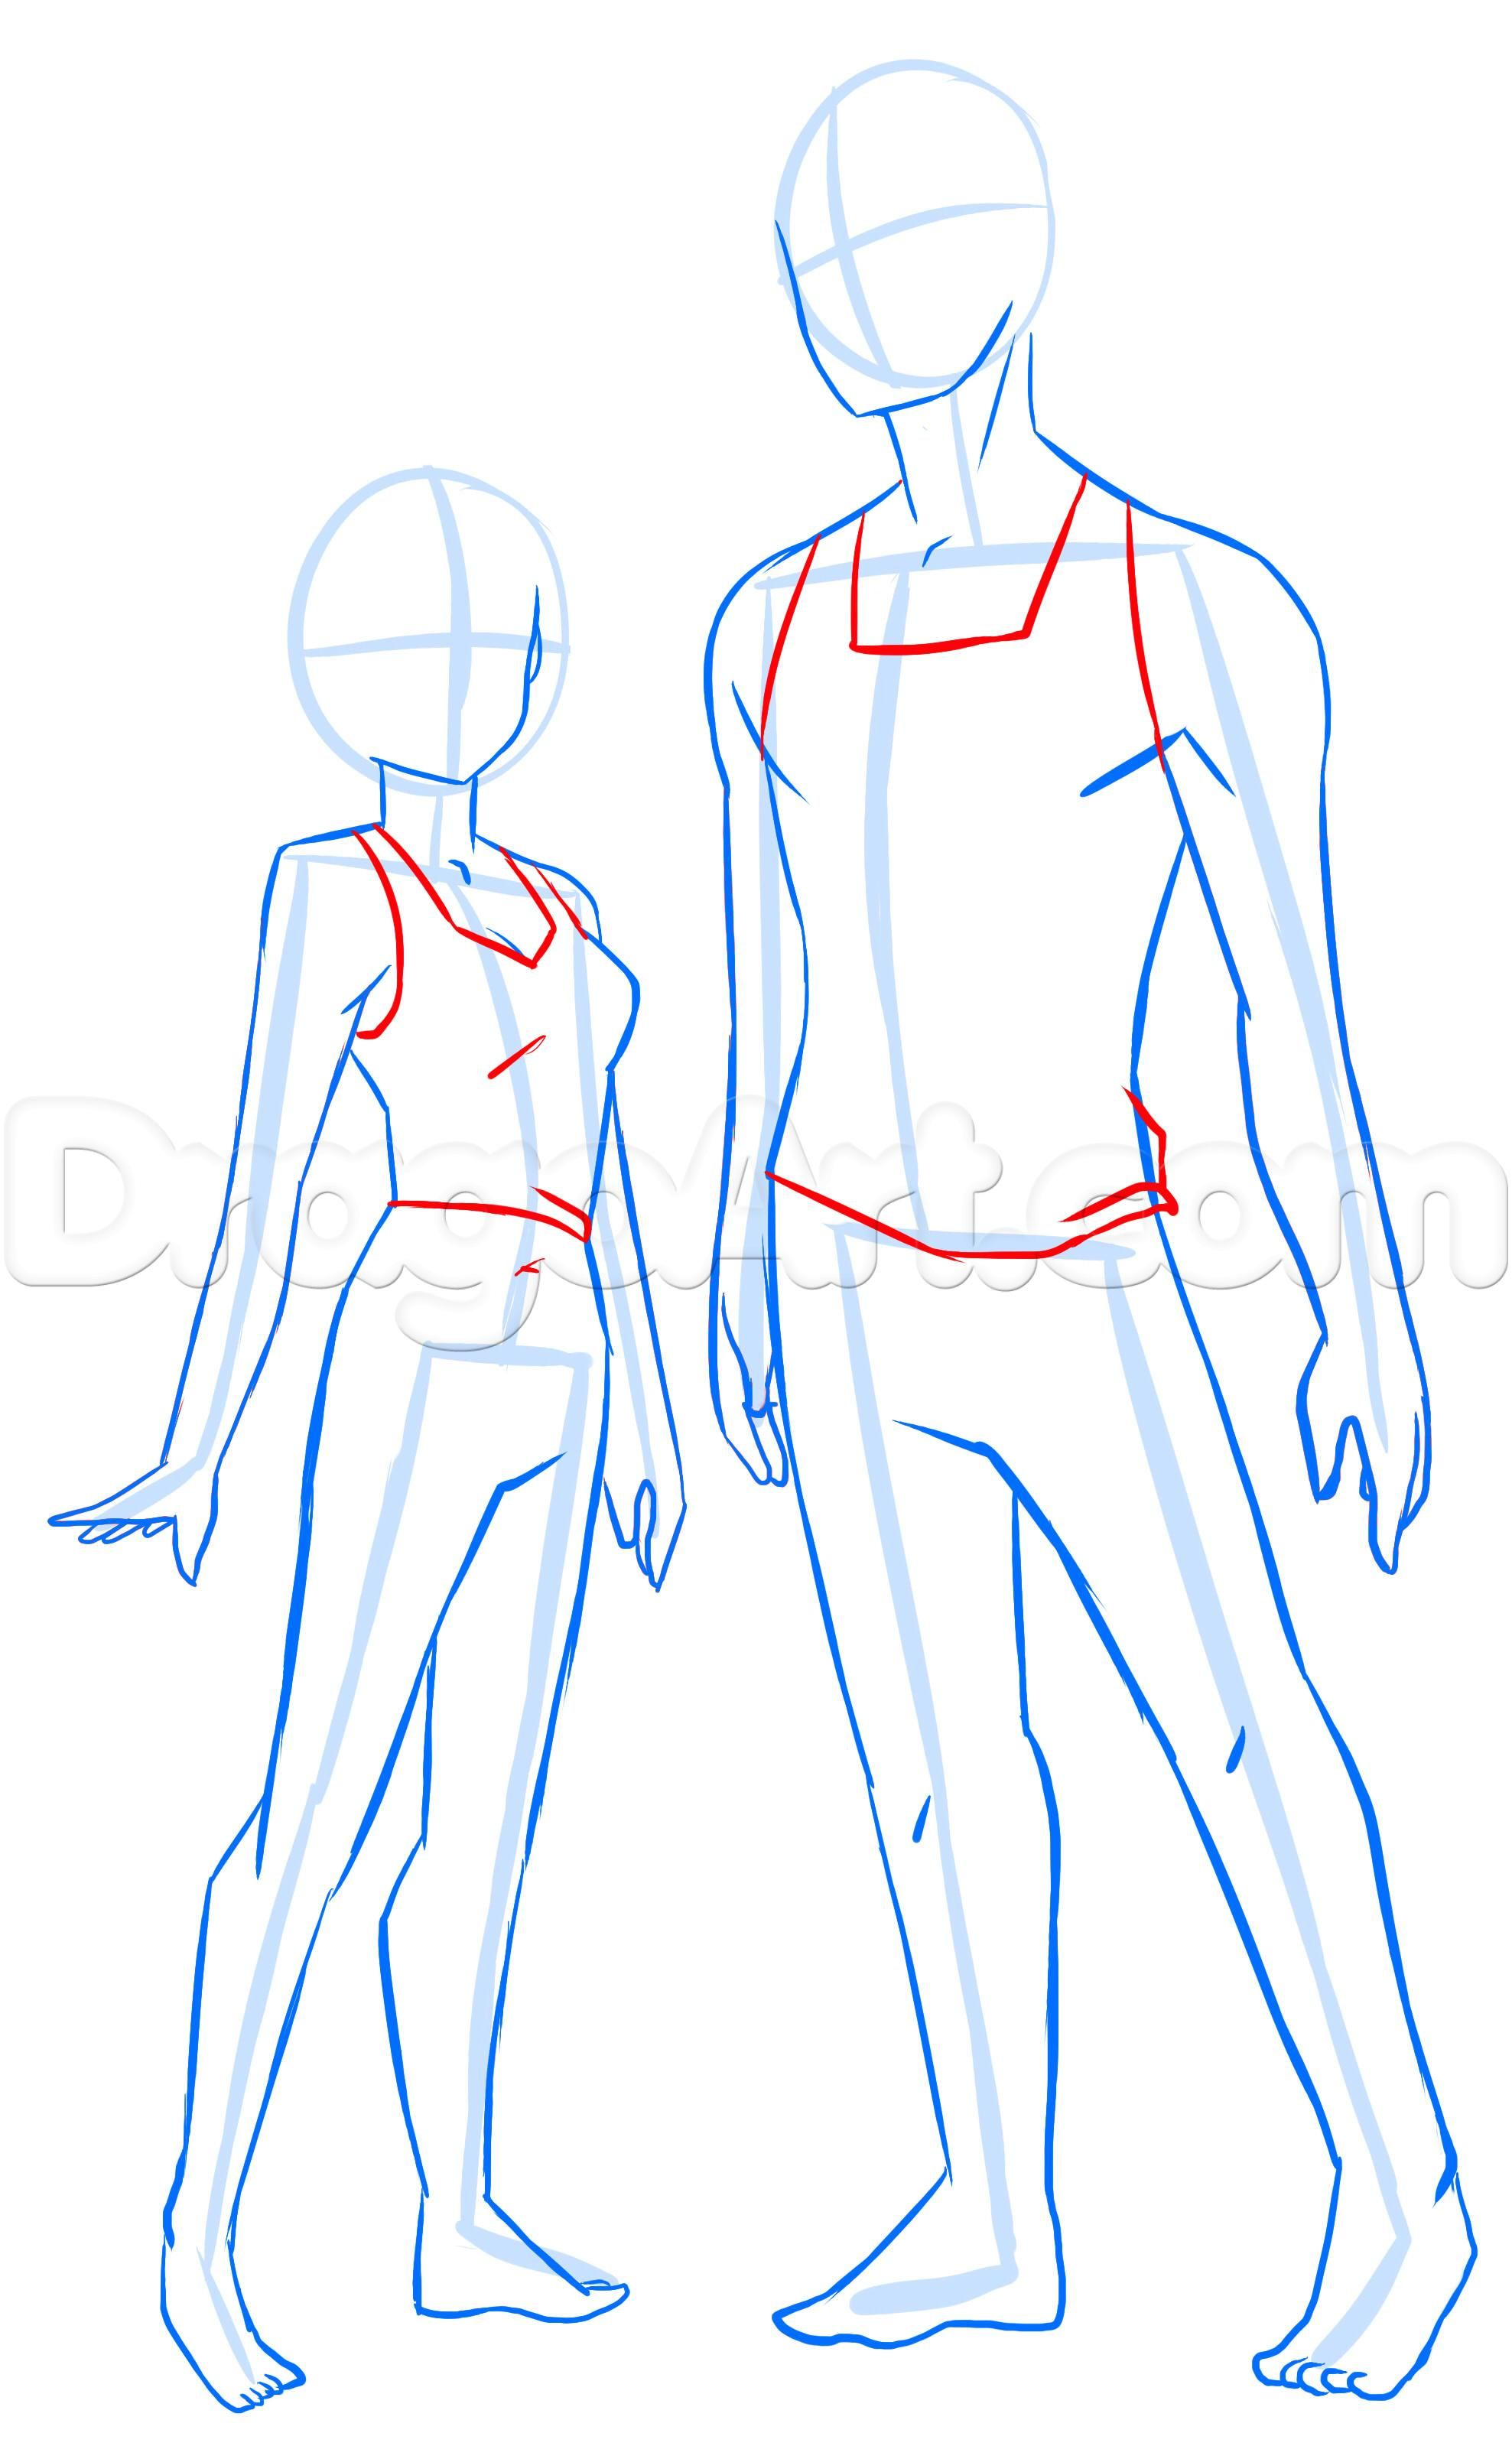 How To Draw Anime Anatomy Step 17 Anime Drawings Anime Drawings Tutorials Drawing Anime Bodies